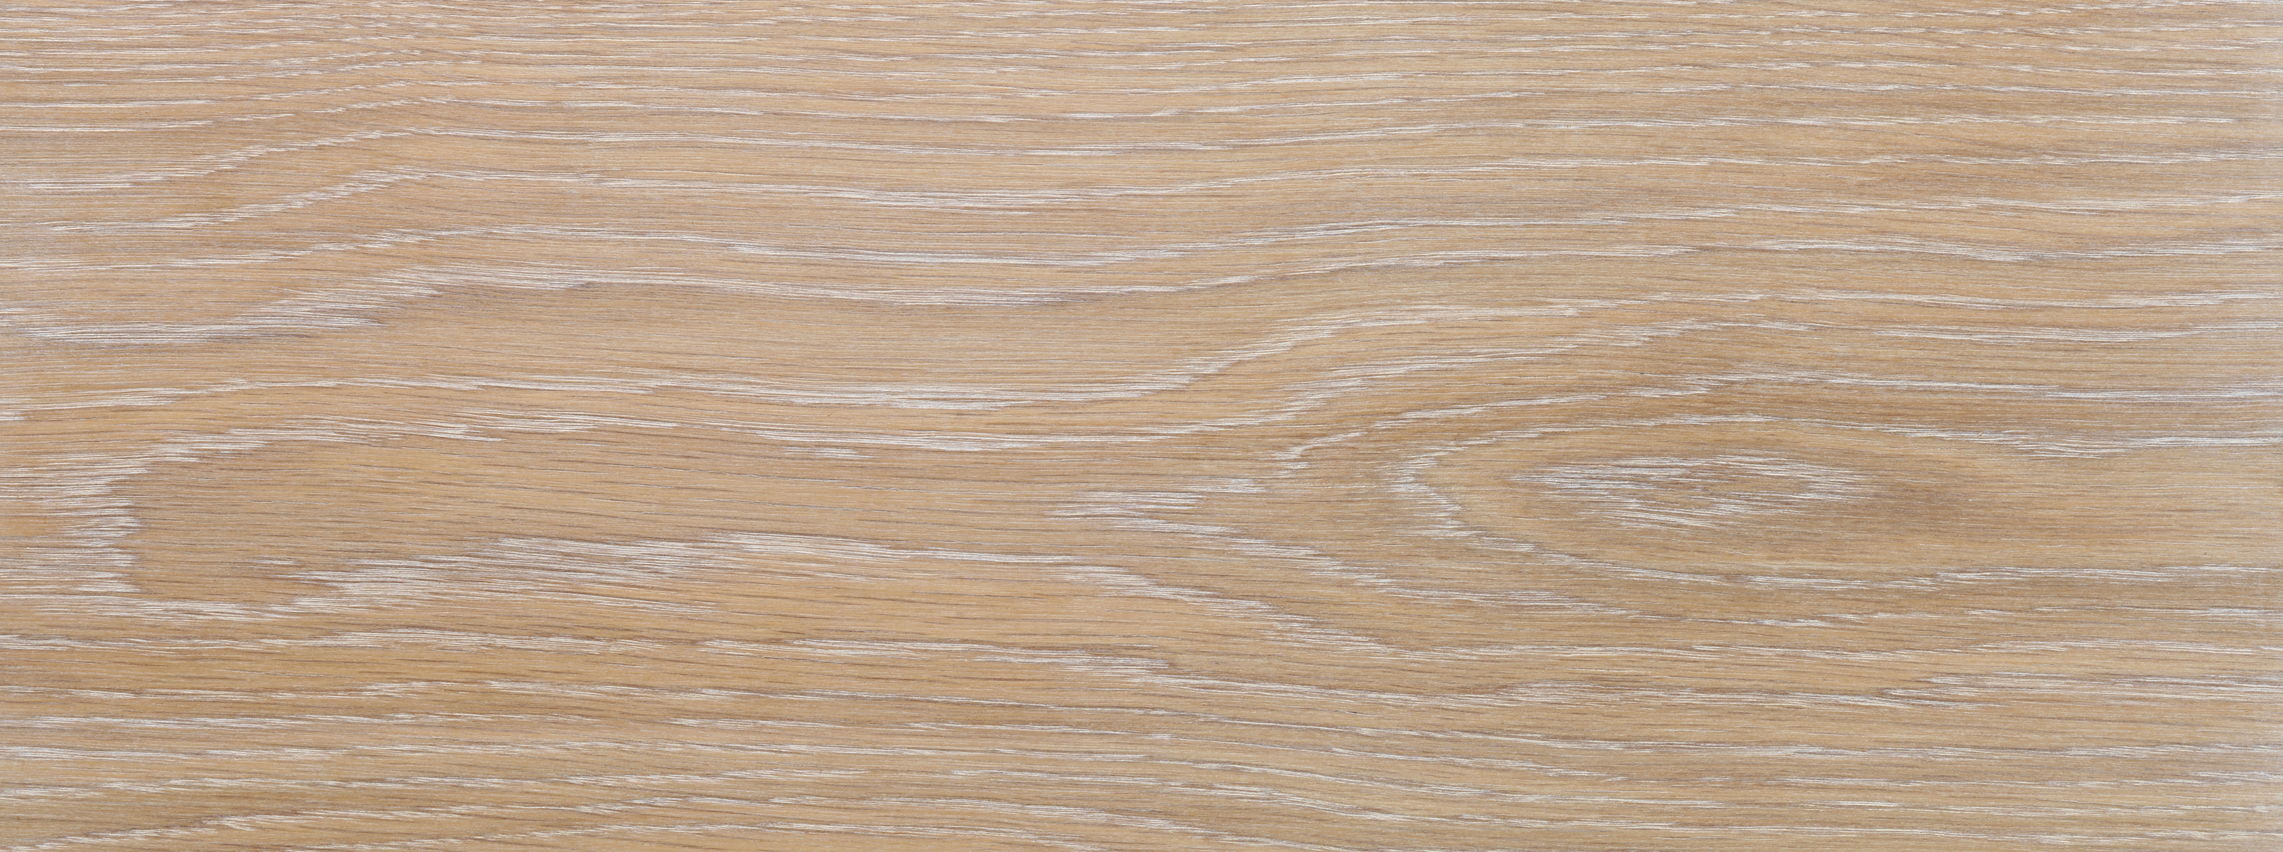 Oak 14mm engineered board, Brushed & White Limed, 1sqm pack